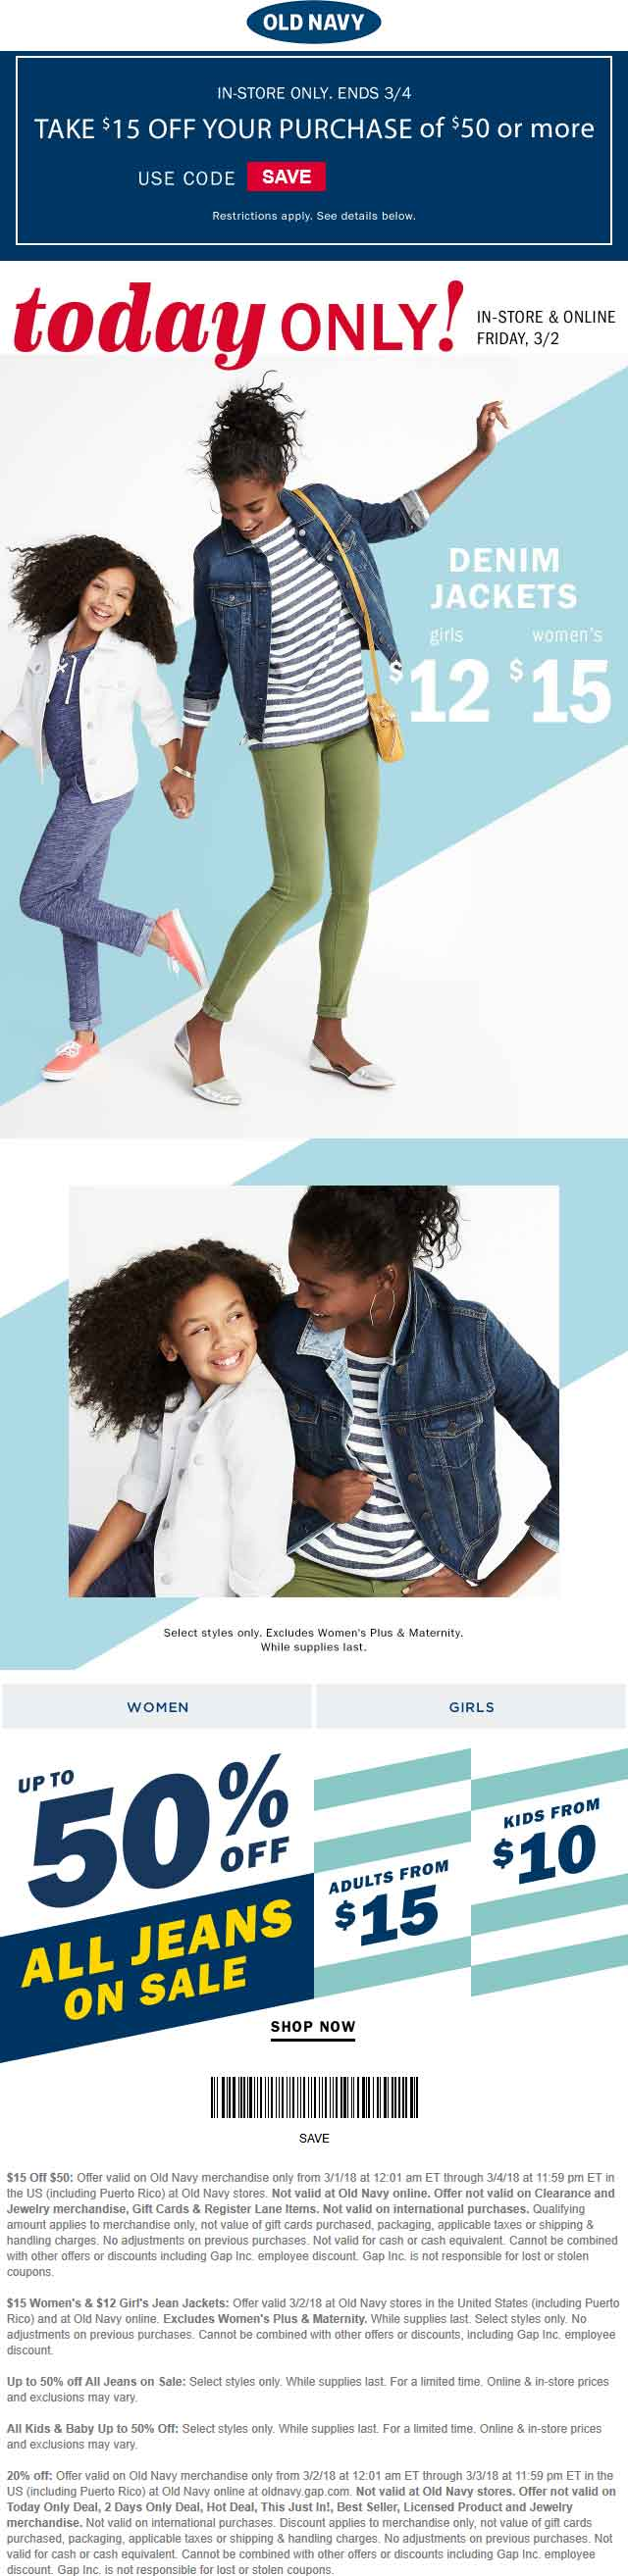 OldNavy.com Promo Coupon $15 off $50 at Old Navy, or 20% online via promo code SAVE